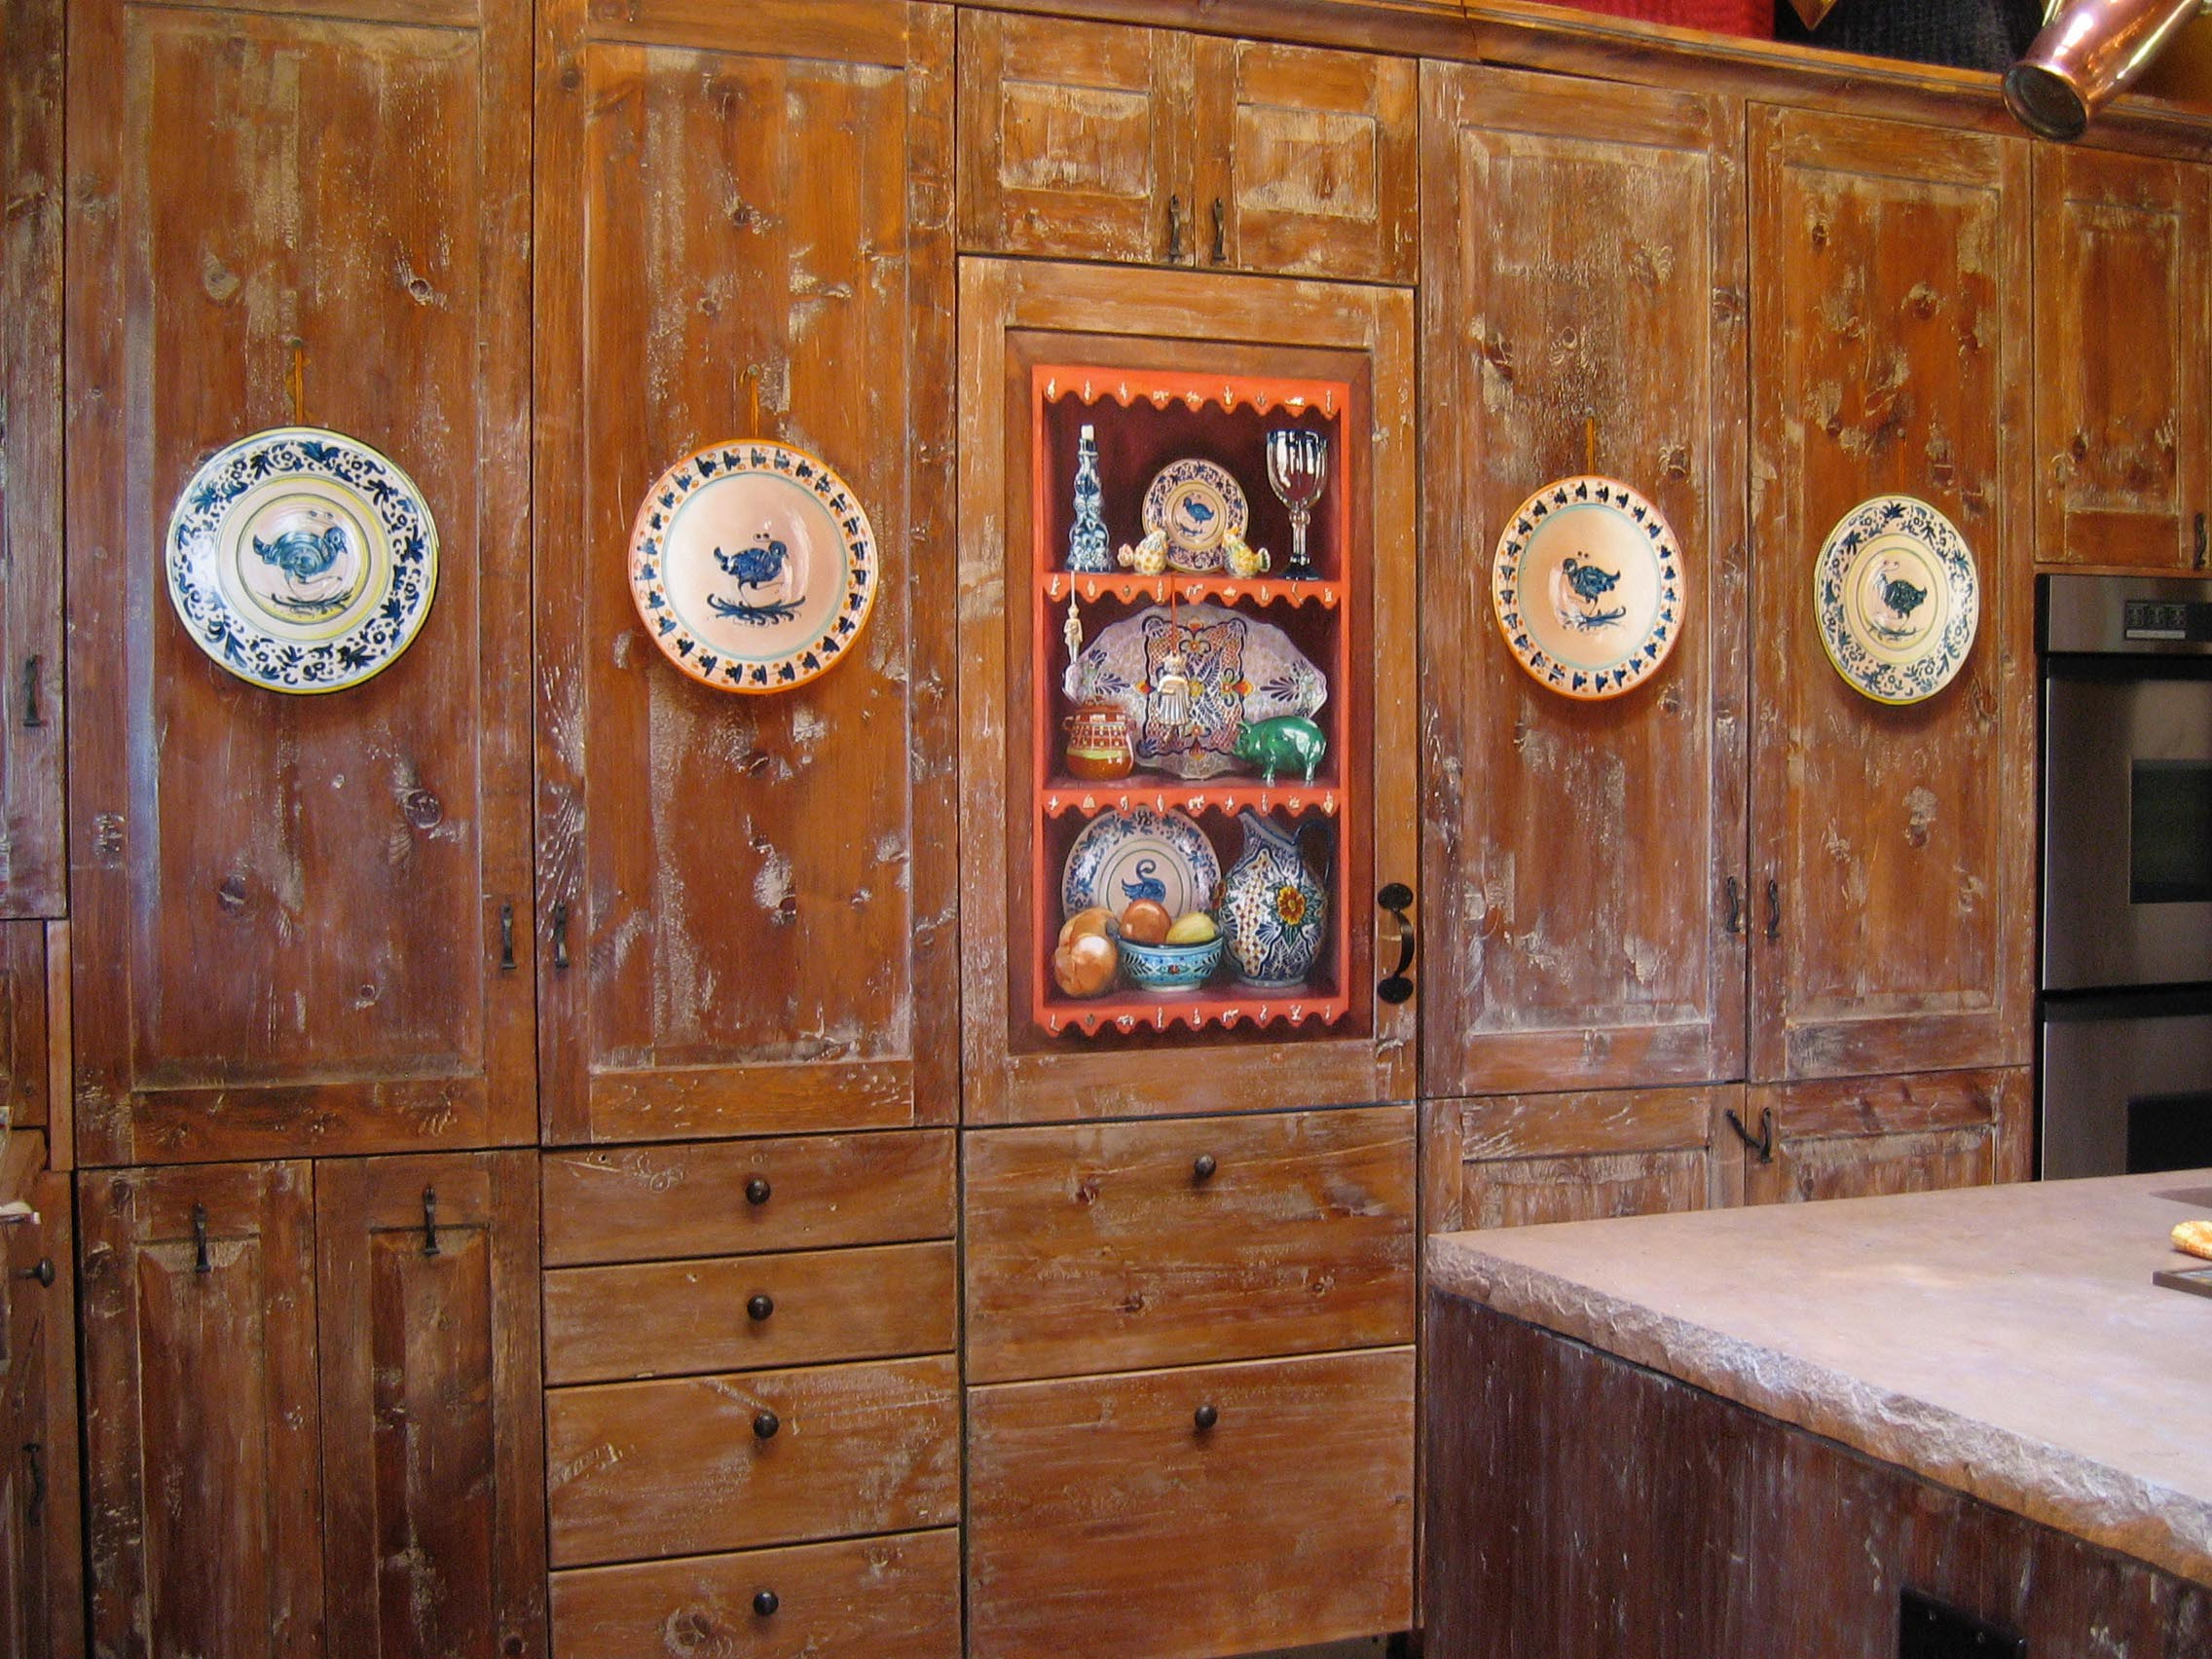 Trompe l'oeil plates and shelves with objects, painted on cupboard doors